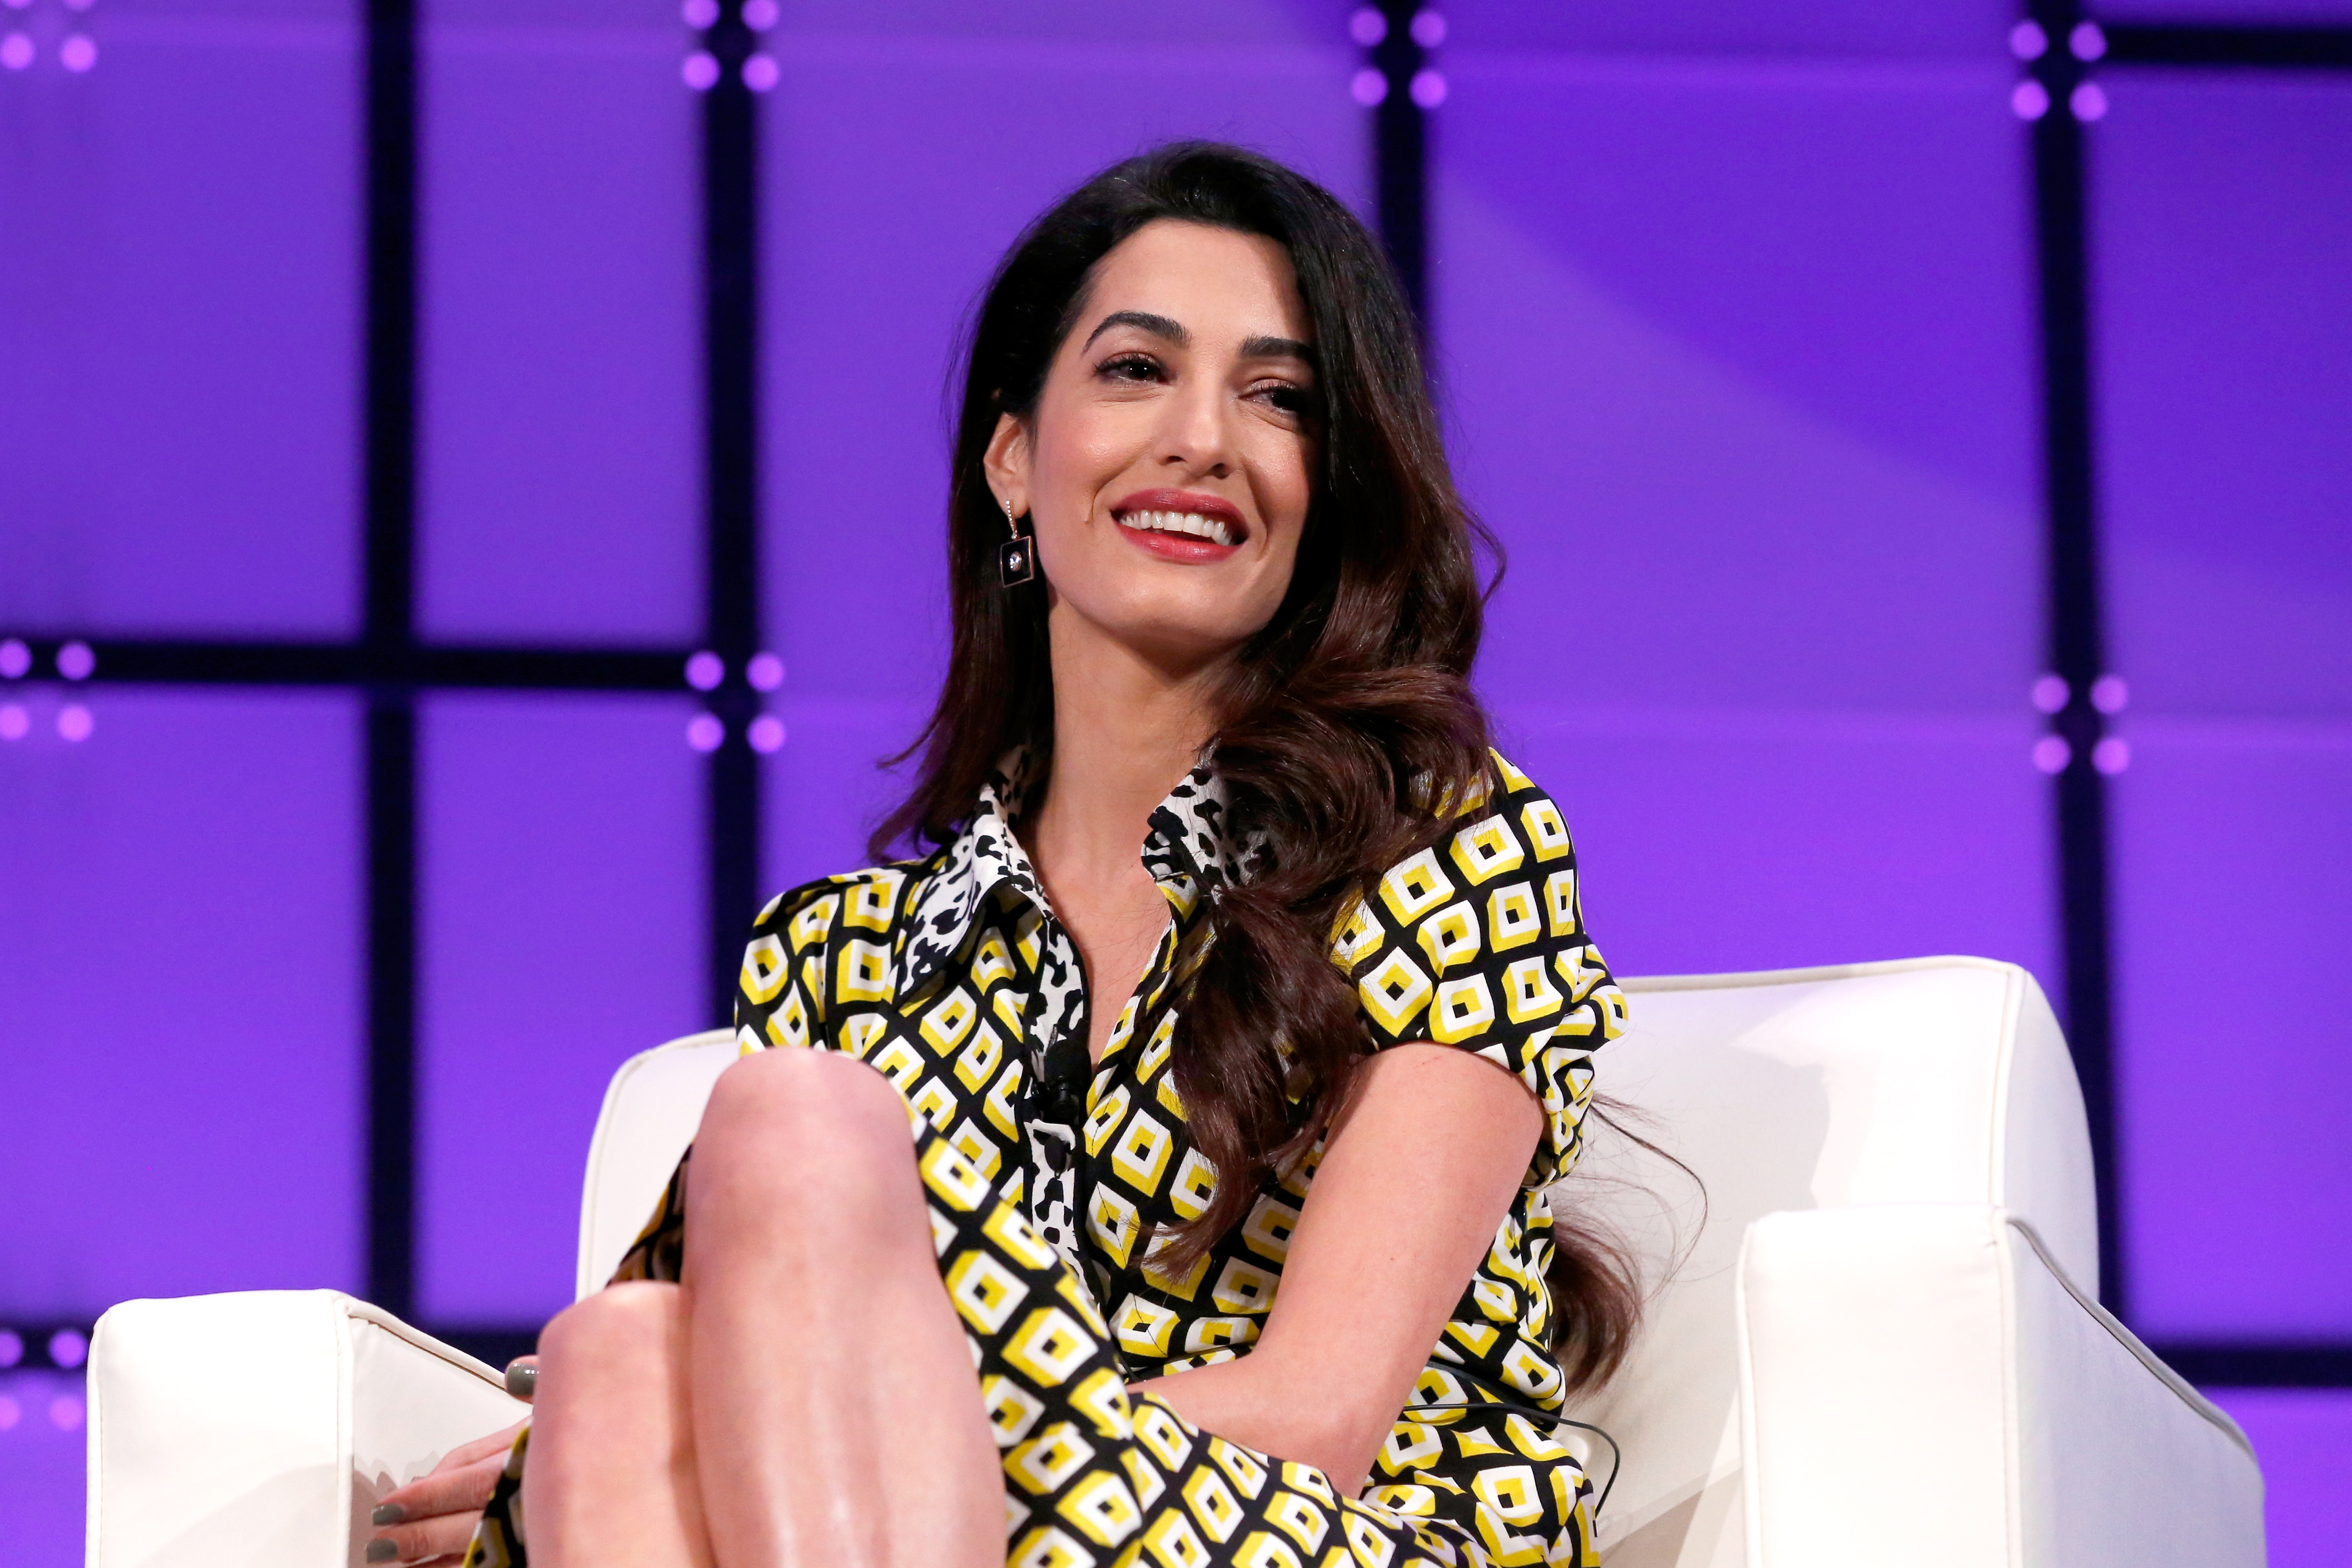 Amal-Clooney-Applauds-Parkland-Student-Survivors-For-Their-Bravery-In-Powerful-Talk